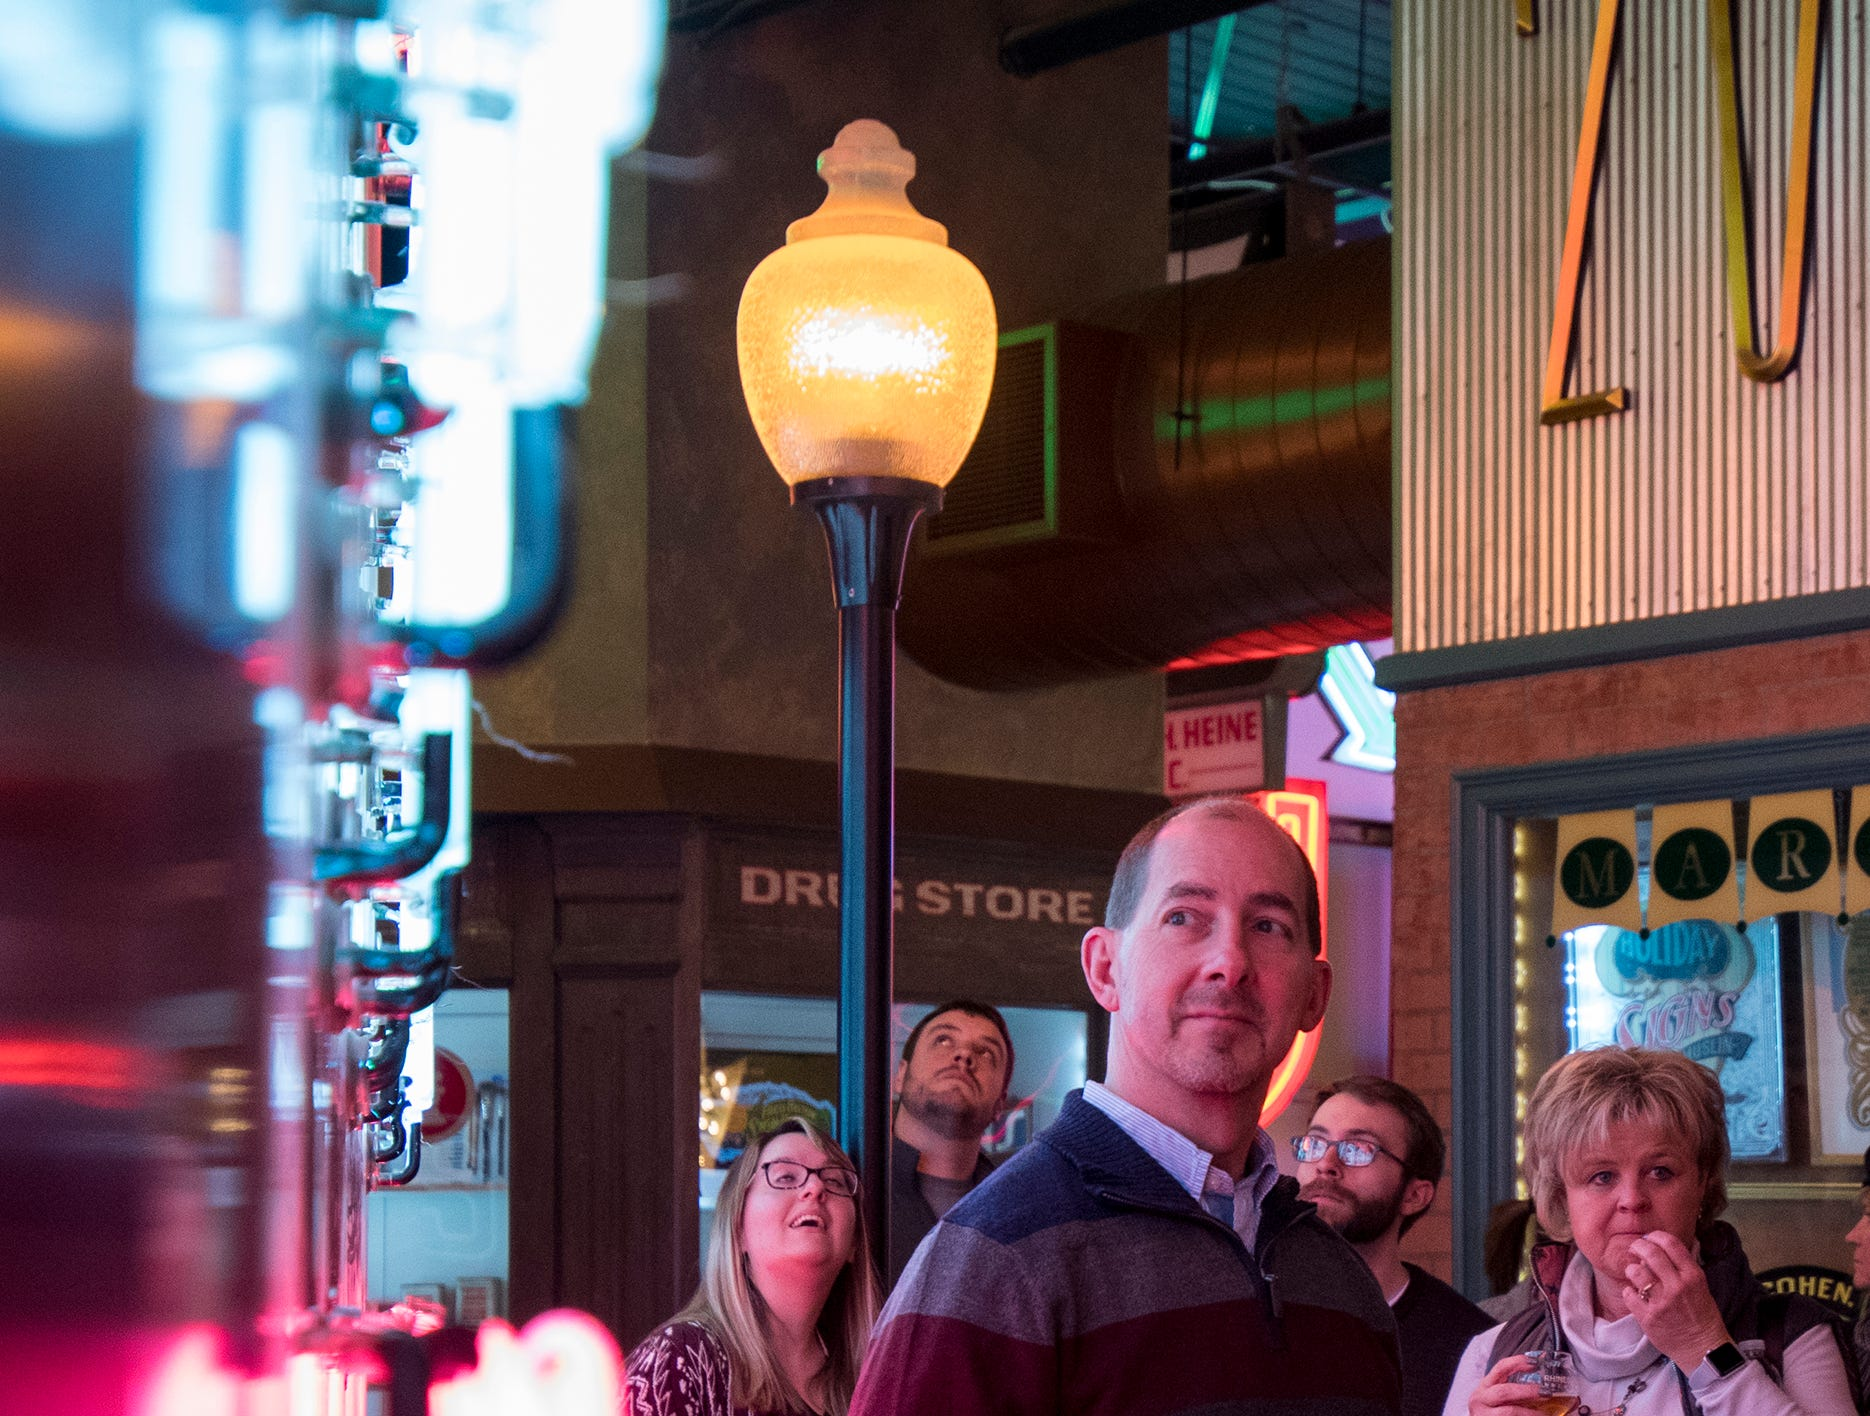 Jeff Wolfe of Dayton checks out a giant neon McDonalds sign during Signs and Suds at the American Sign Museum Thursday, January 24, 2019 in Cincinnati, Ohio.